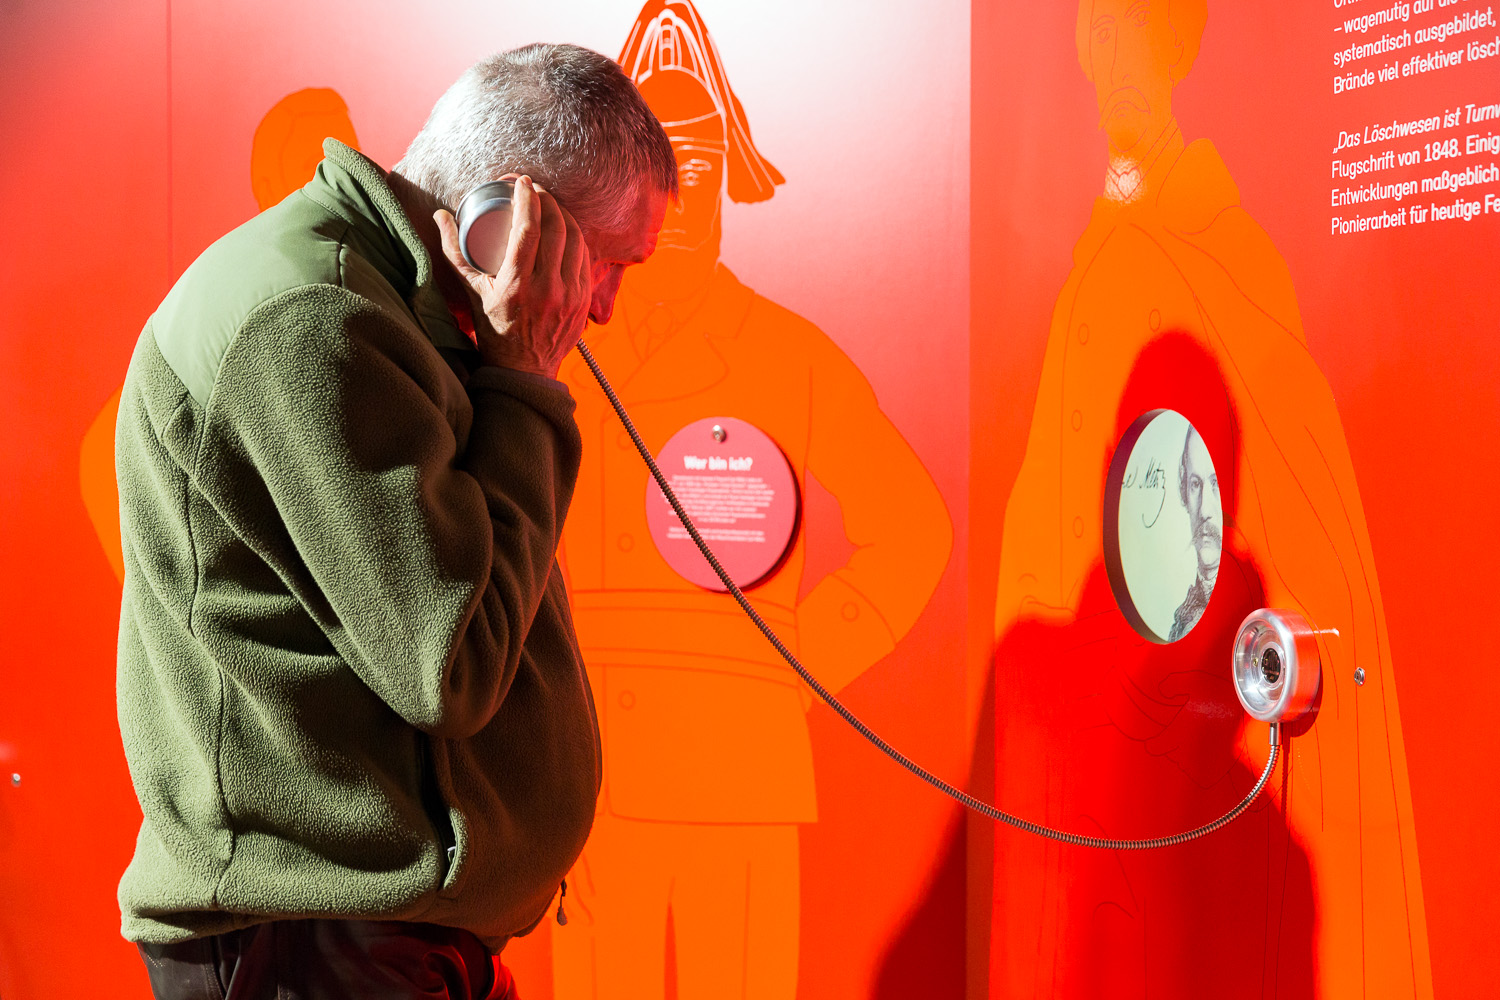 Museum visitor hears information about the founding father of the voluntary fire brigade